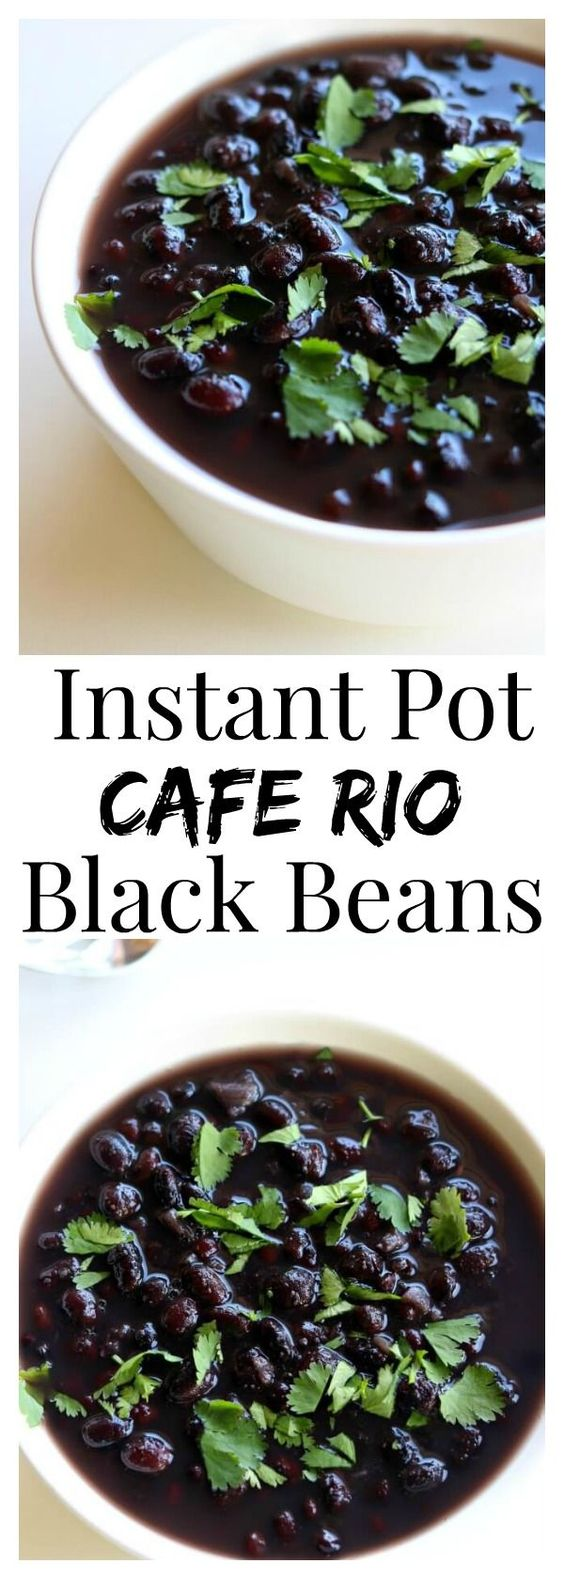 INSTANT POT CAFE RIO BLACK BEANS RECIPES